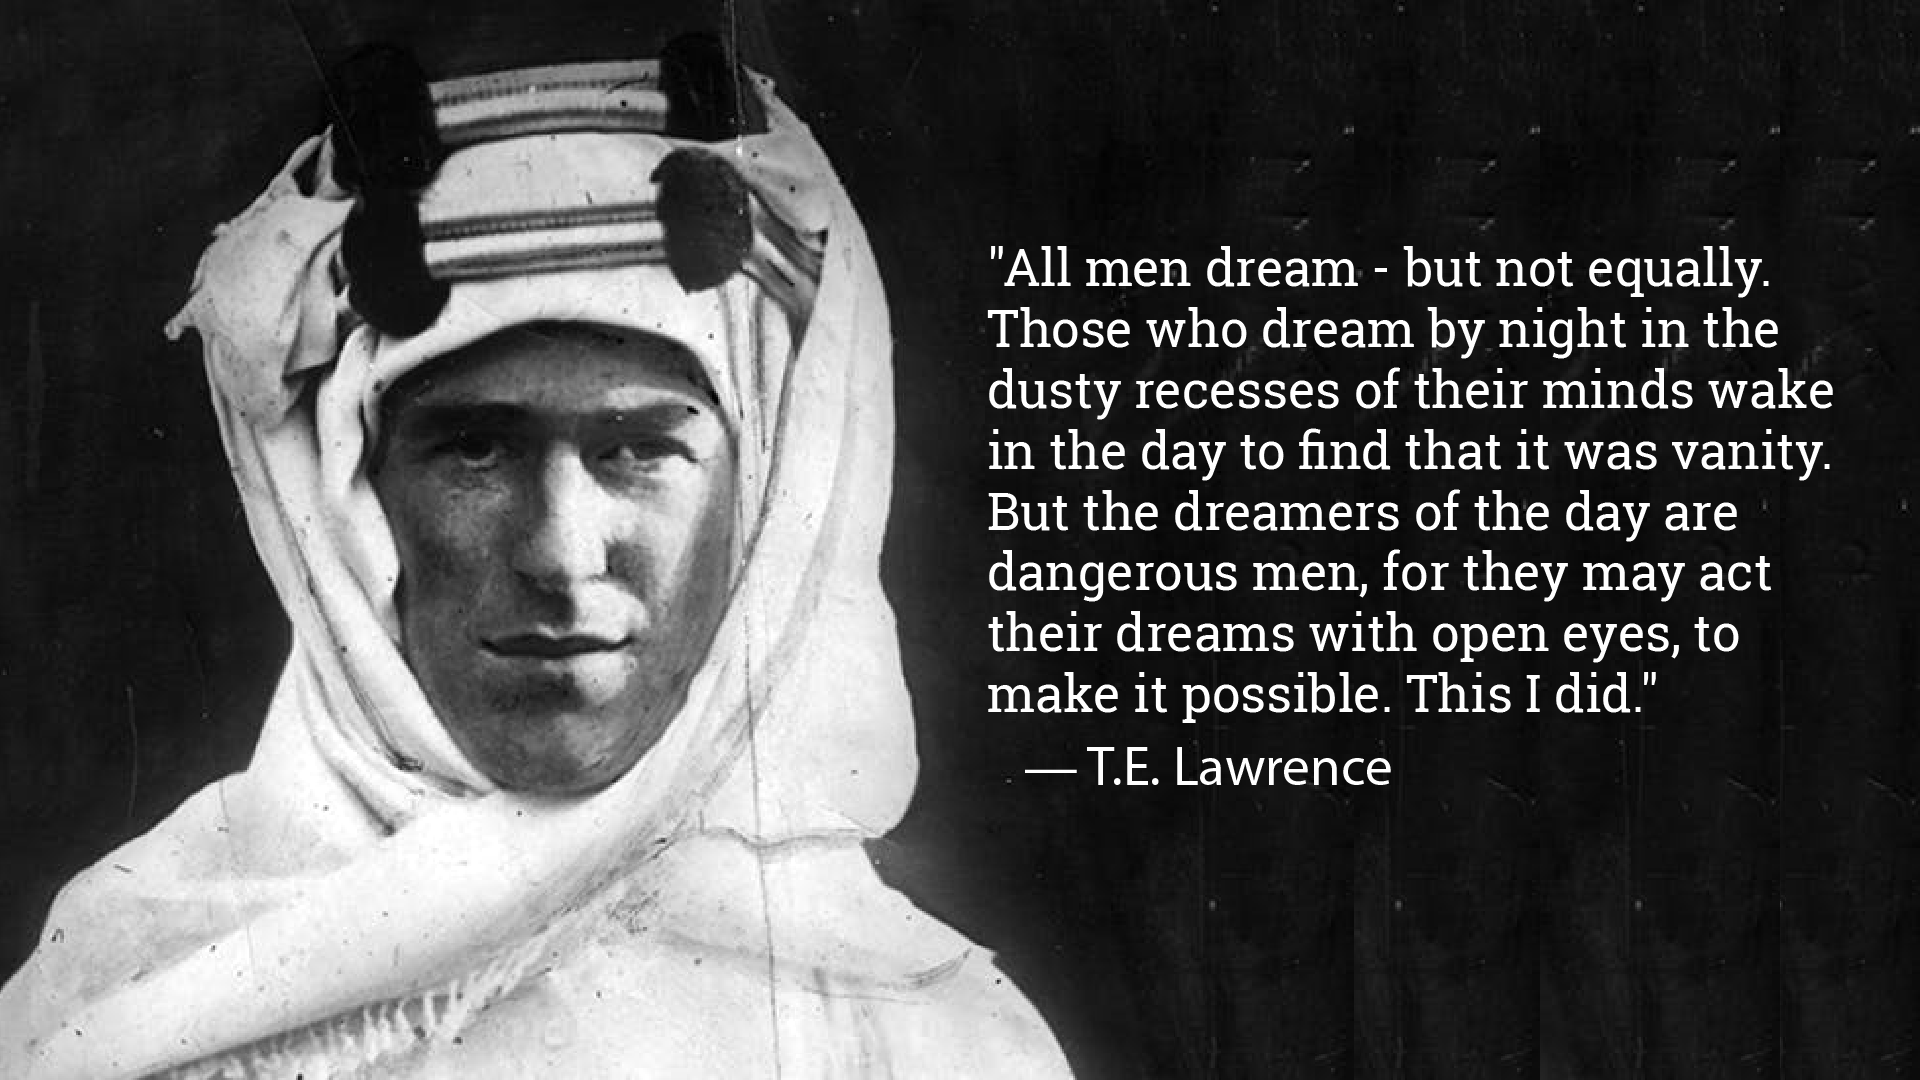 [IMAGE] ALL MEN DREAM – BUT NOT EQUALLY.